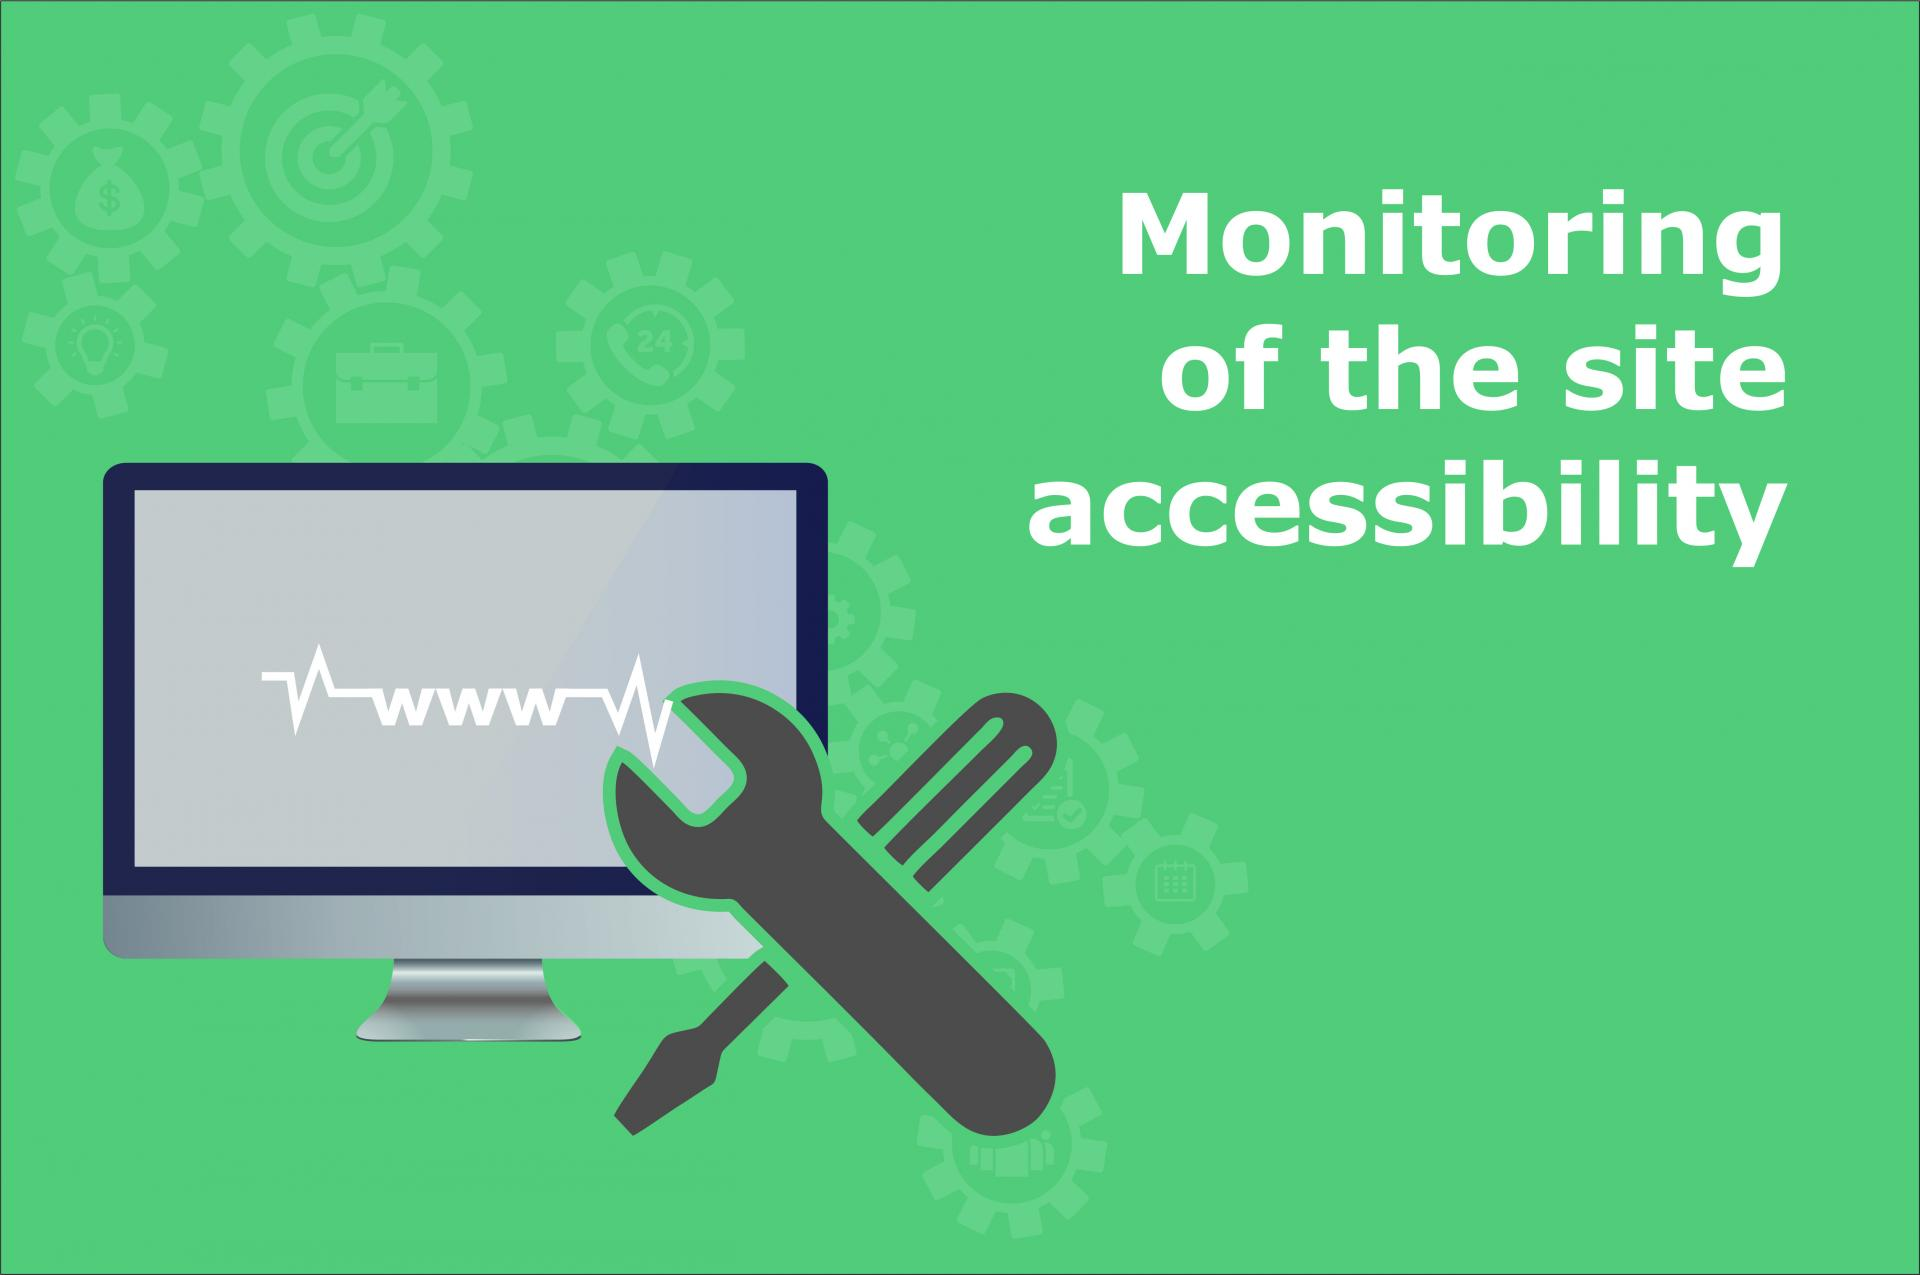 Monitoring of the site accessibility